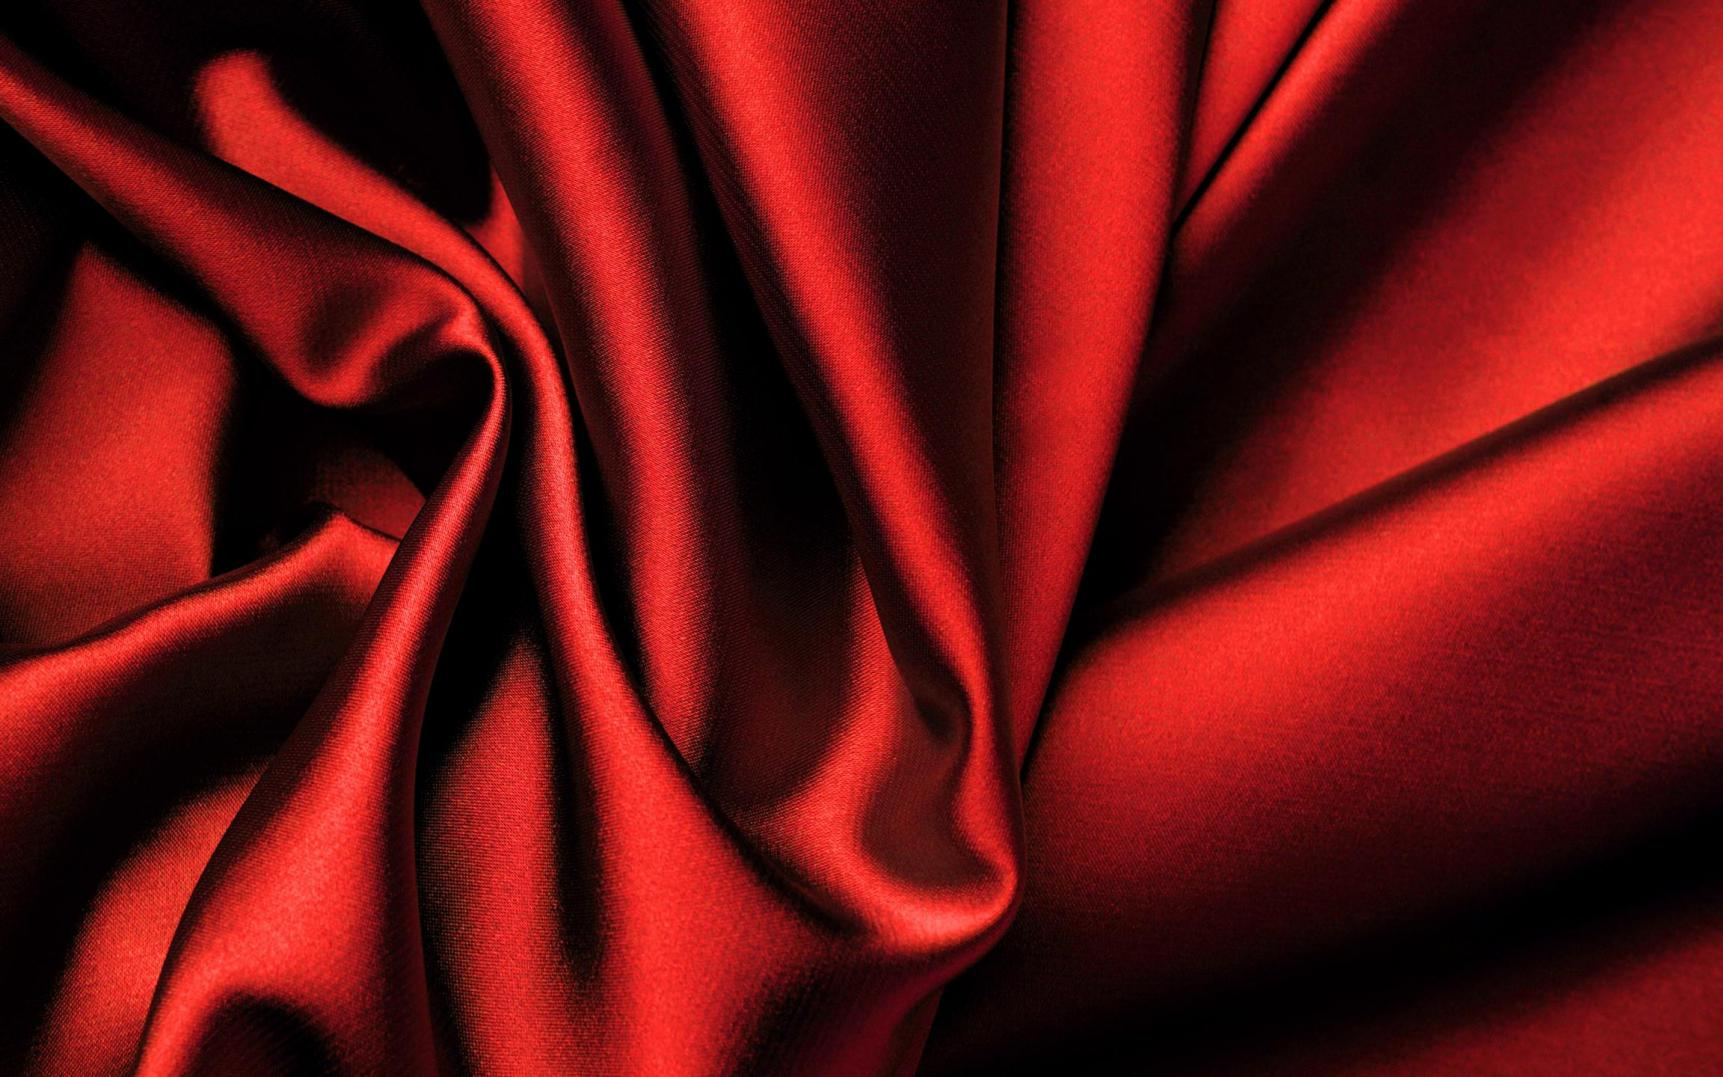 Red bed sheet texture - K West Launches The Intimate Red Room Valentine S Package Inspired By 50 Shades Of Grey K West